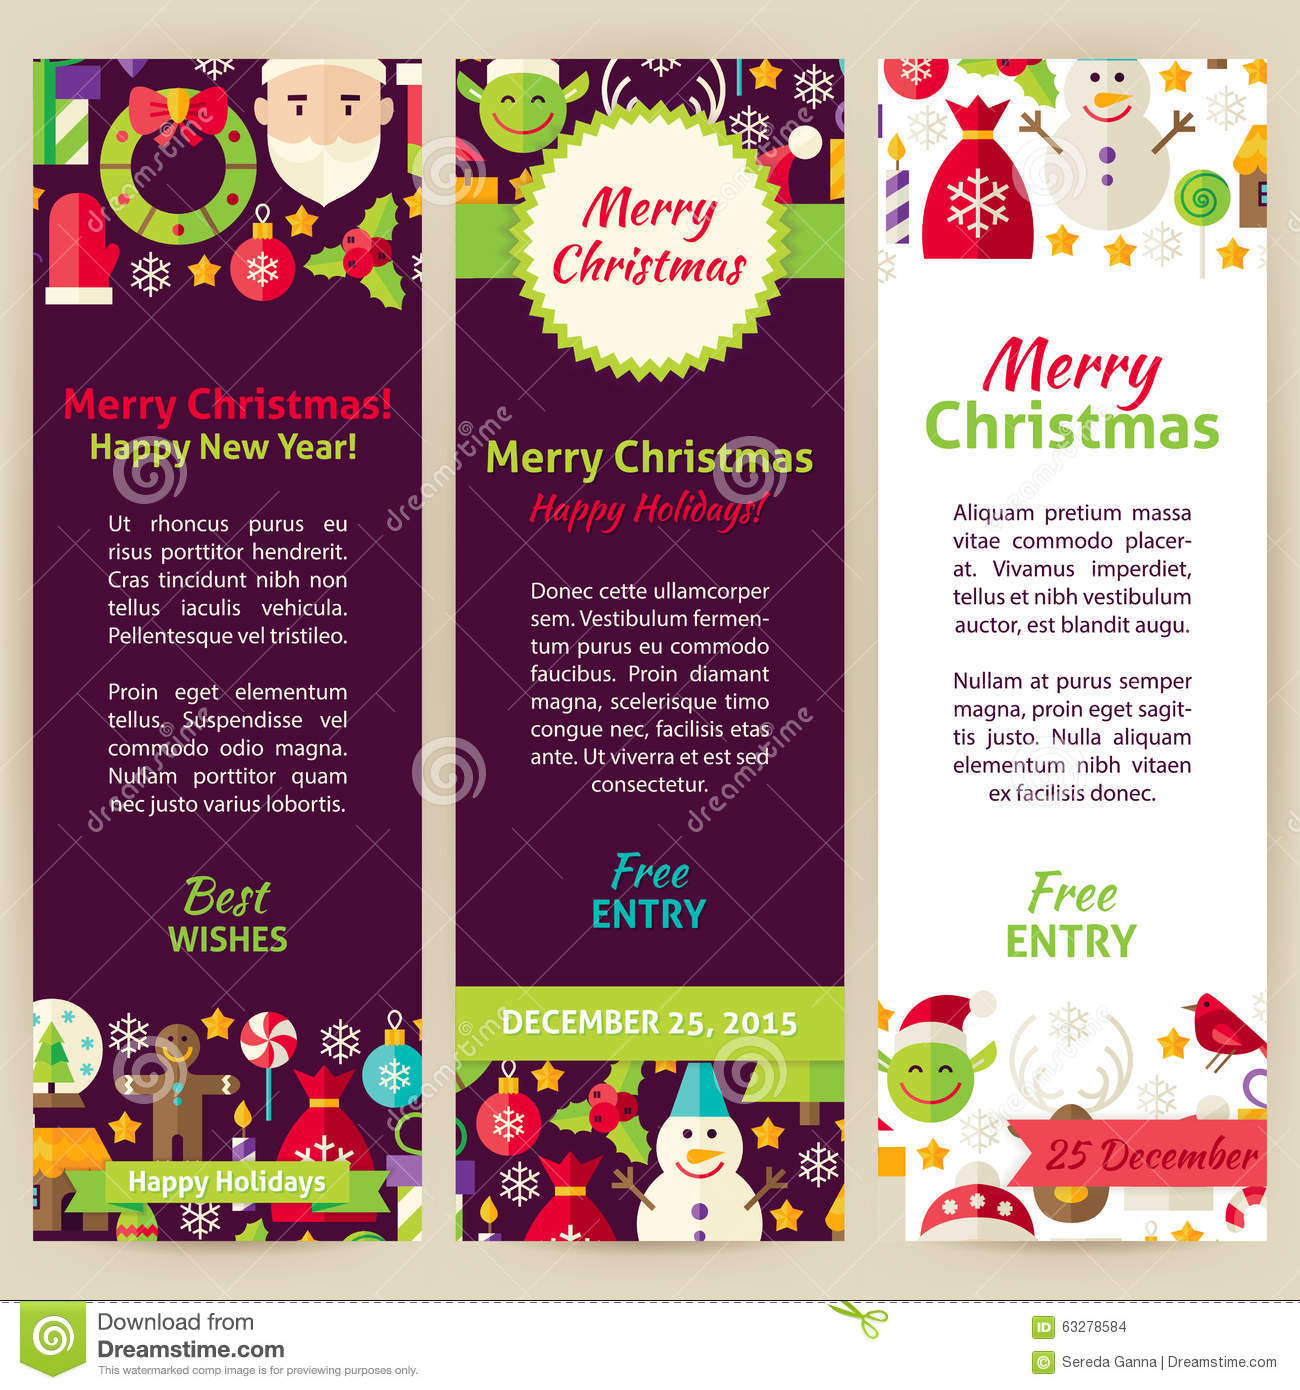 merry christmas vector party invitation template flyer set stock merry christmas vector party invitation template flyer set